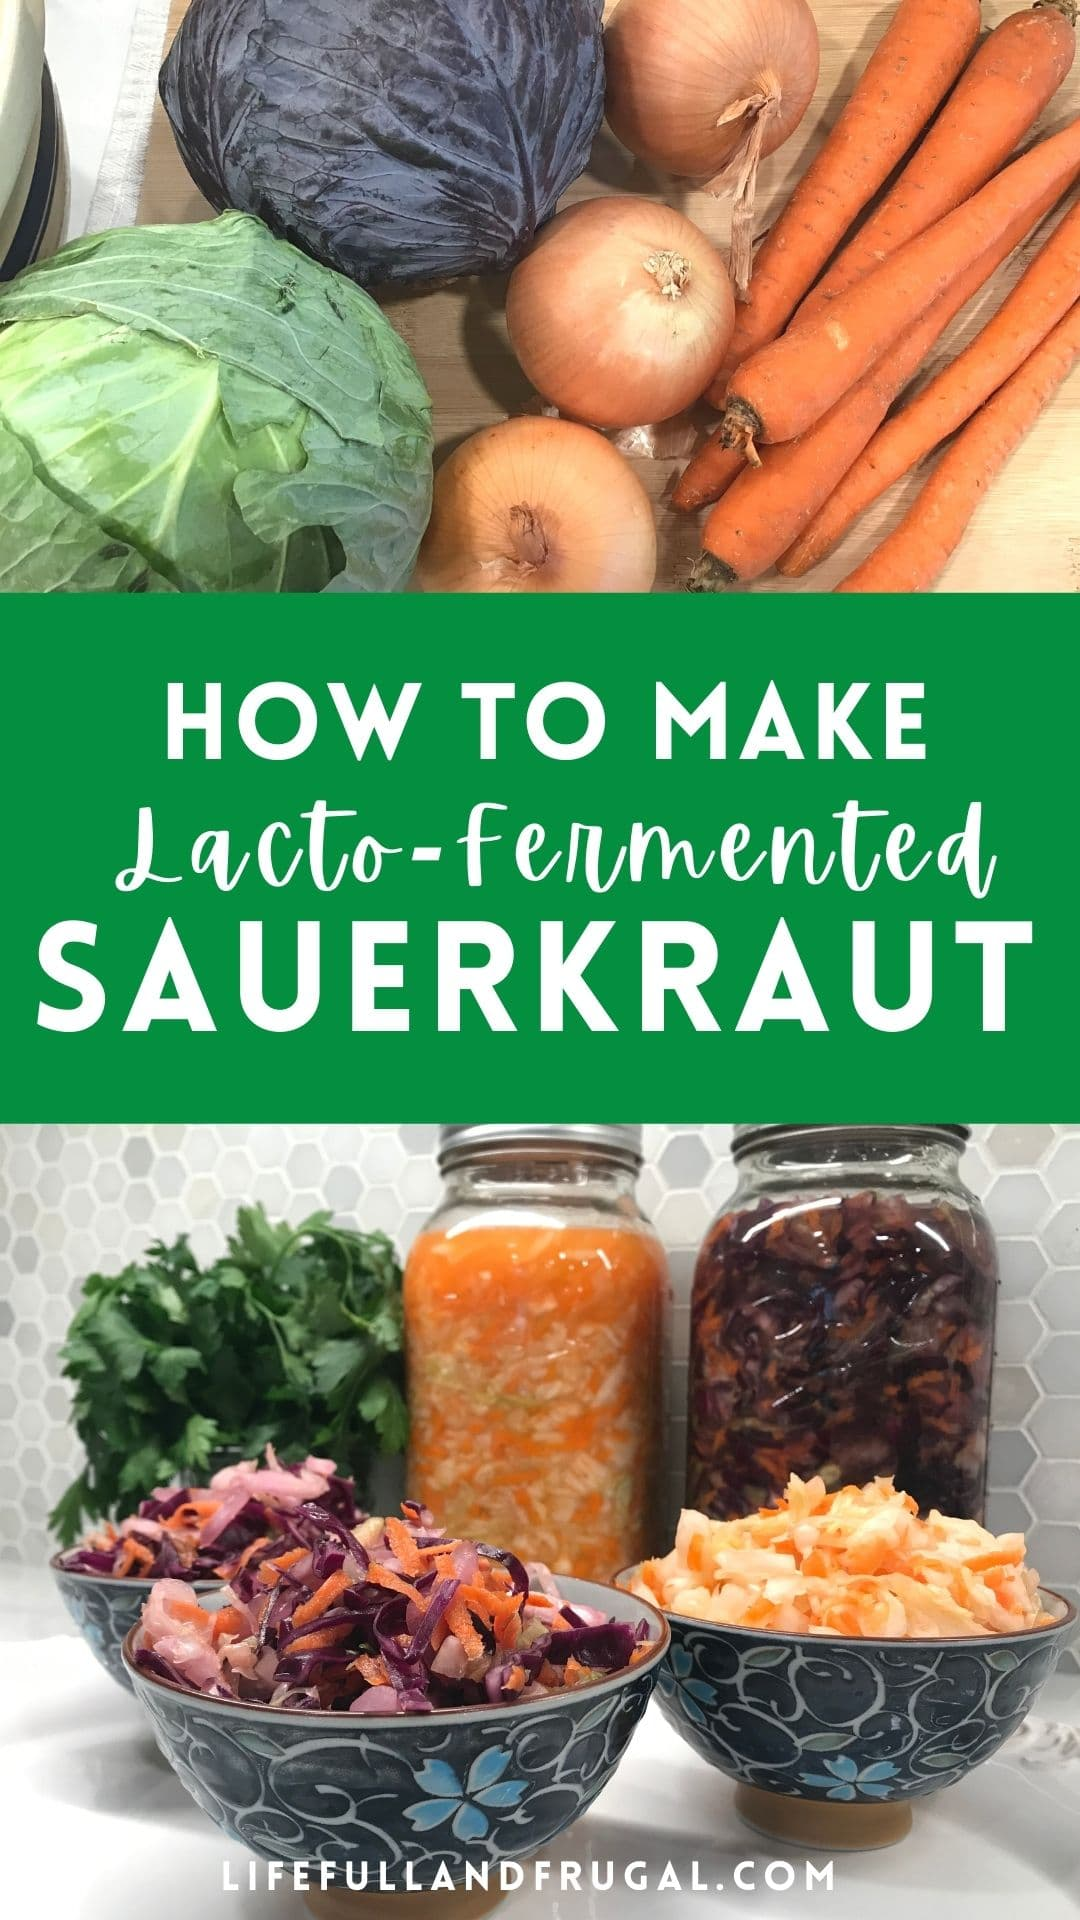 Simple Lacto-Fermented Sauerkraut - Life Full and Frugal